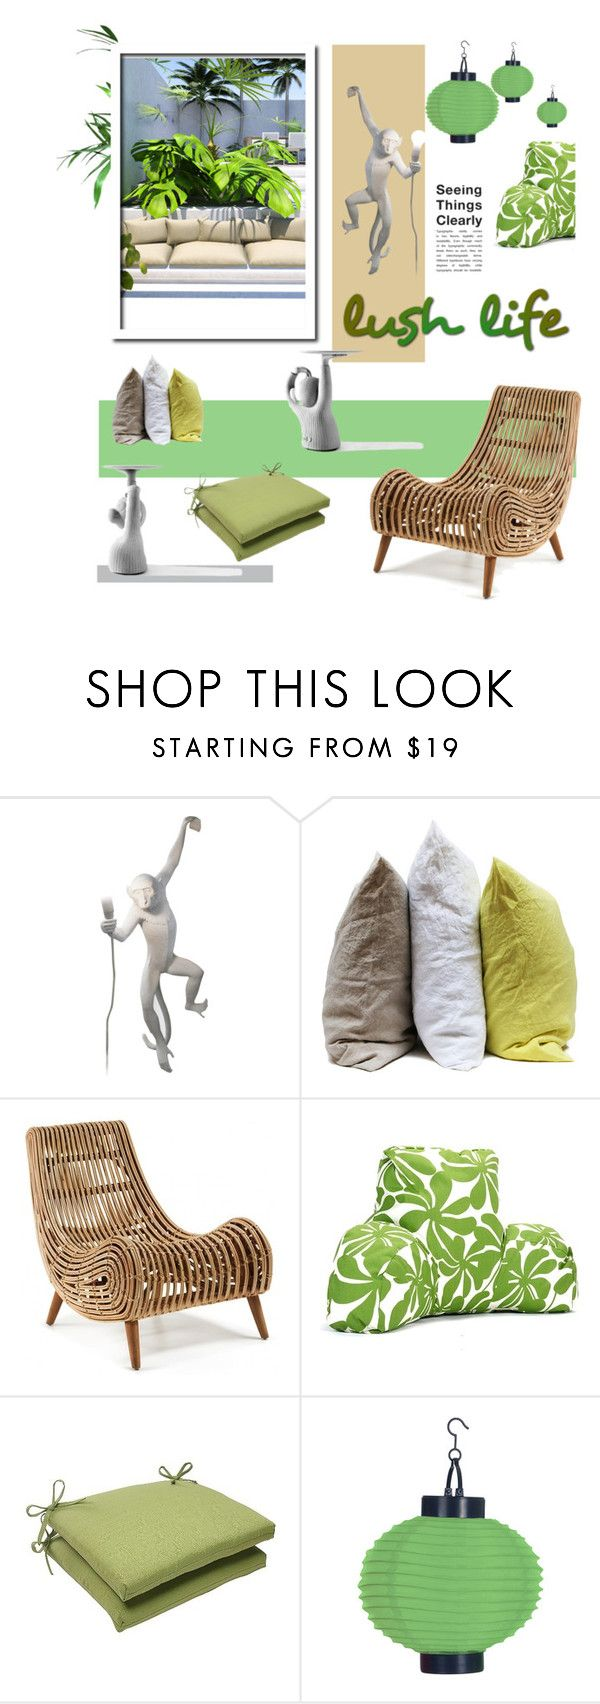 """Tropical Concrete Jungle"" by fl4u ❤ liked on Polyvore featuring interior, interiors, interior design, home, home decor, interior decorating, Seletti, Hawkins, Jaime Hayon and Majestic Home Goods"